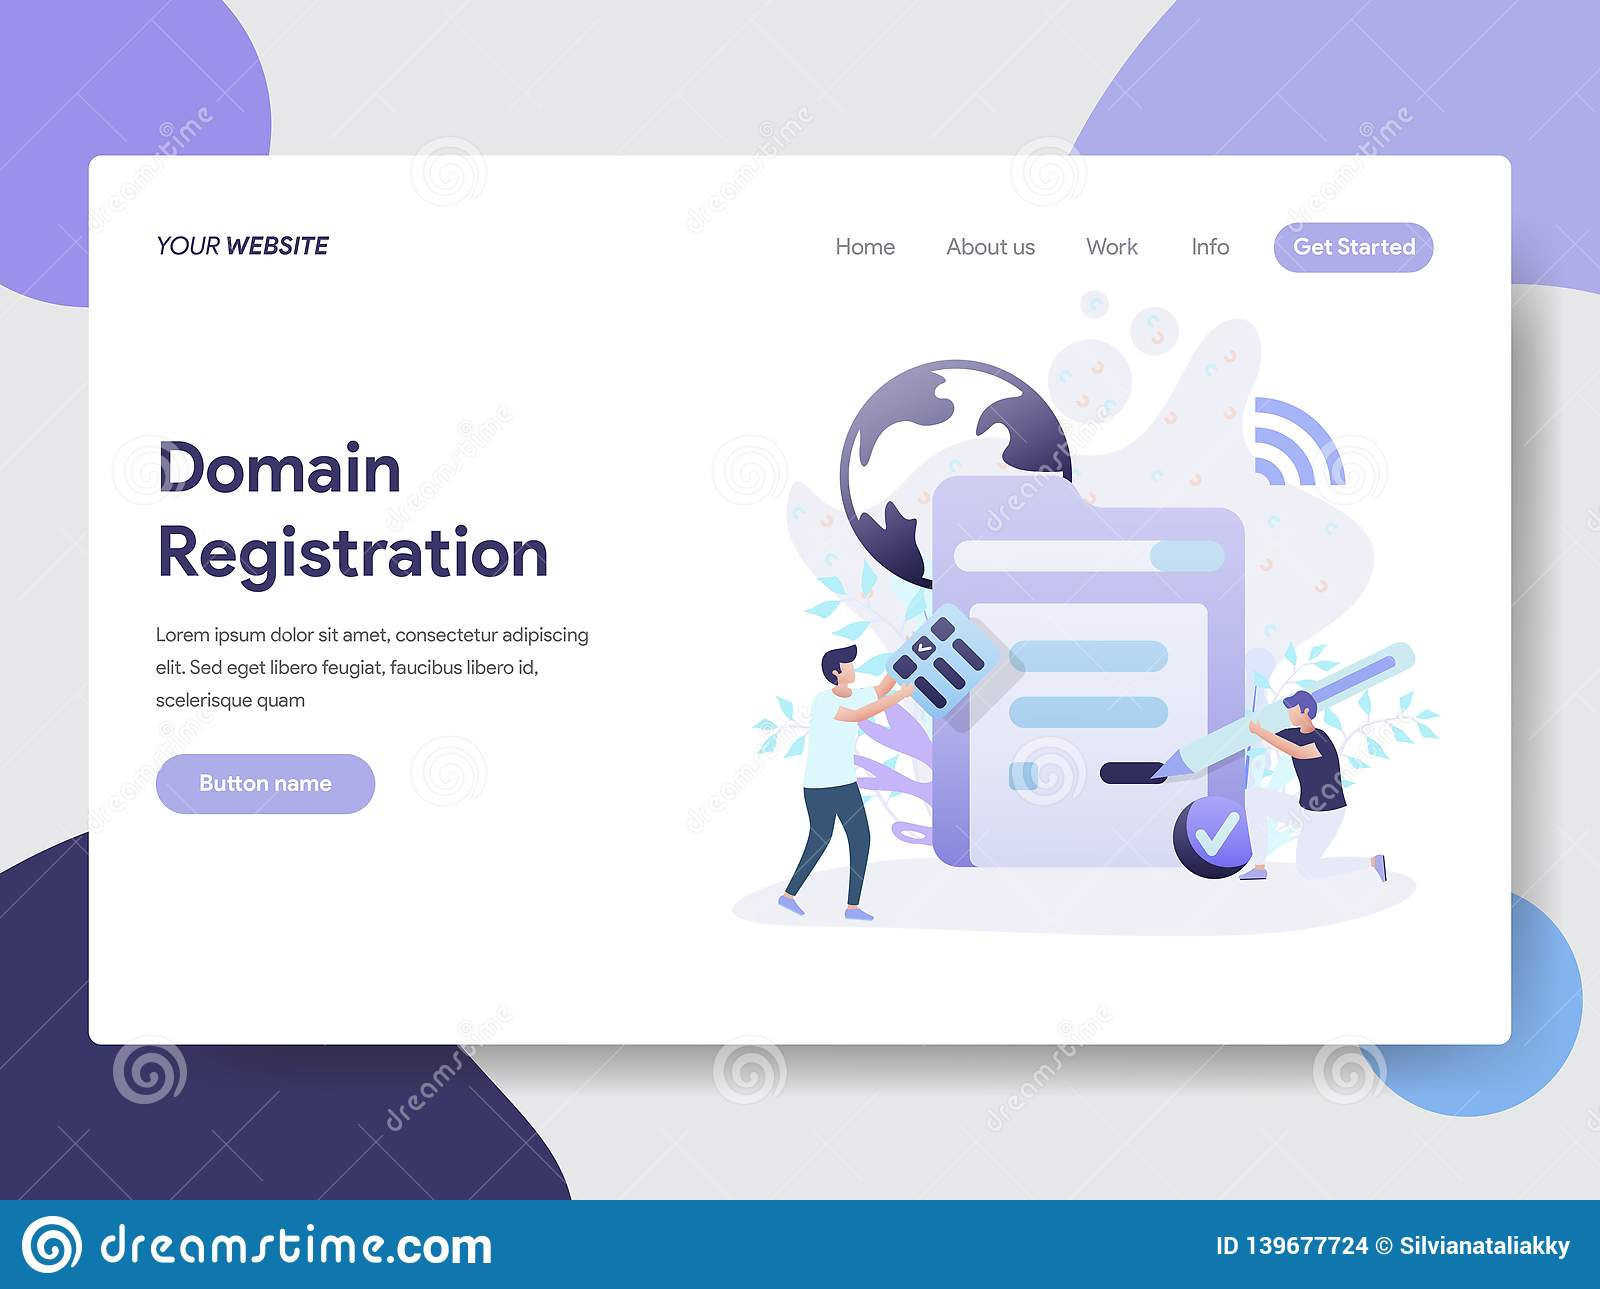 Landing page template of Domain Registration Illustration Concept. Modern flat design concept of web page design for website and